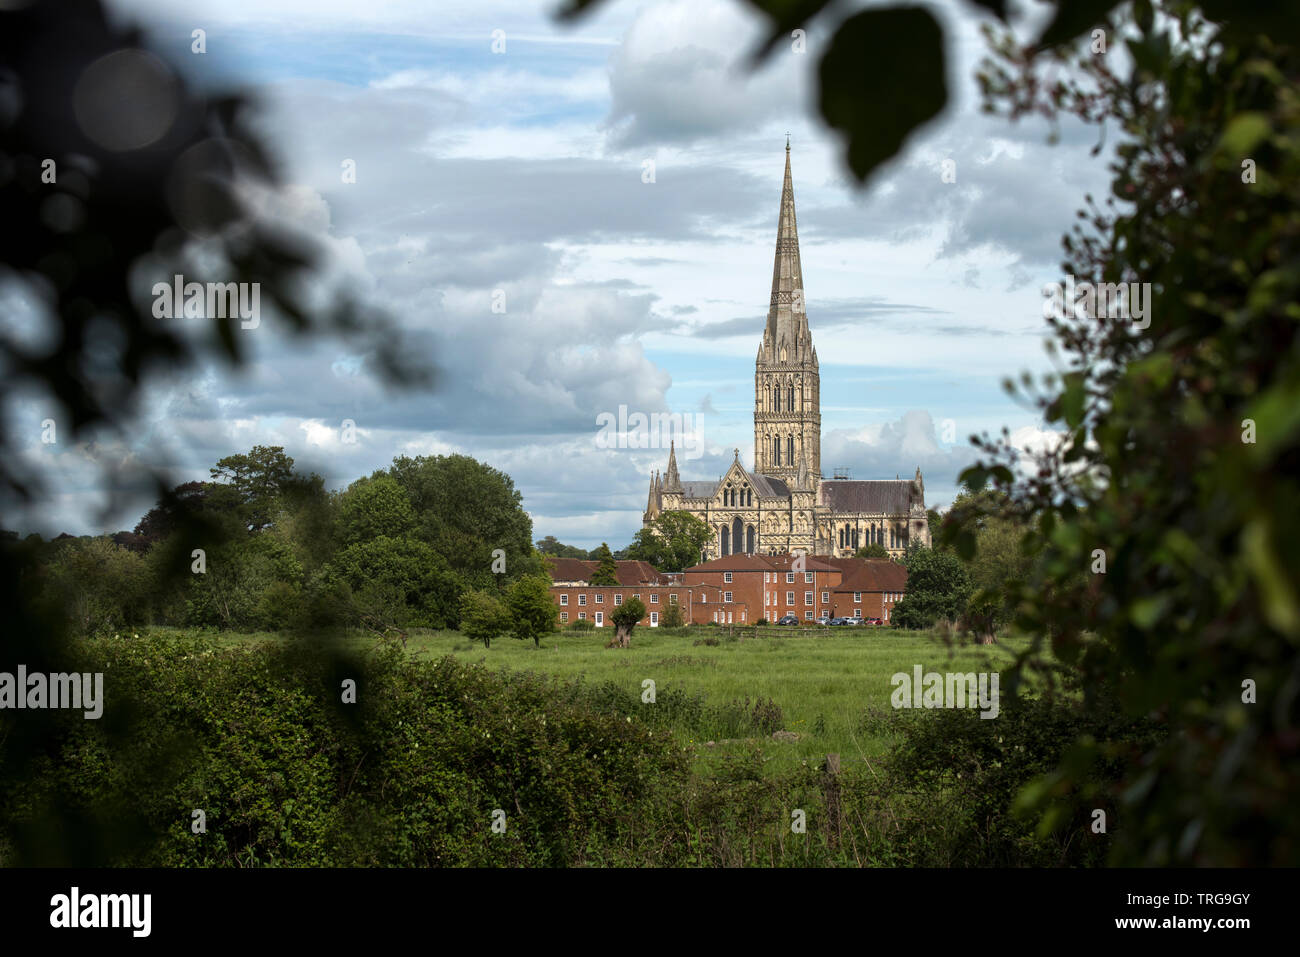 Salisbury Cathedral Wiltshire England UK. May 2019 Painted by the artist John Constable. Salisbury Cathedral, formally known as the Cathedral Church o Stock Photo